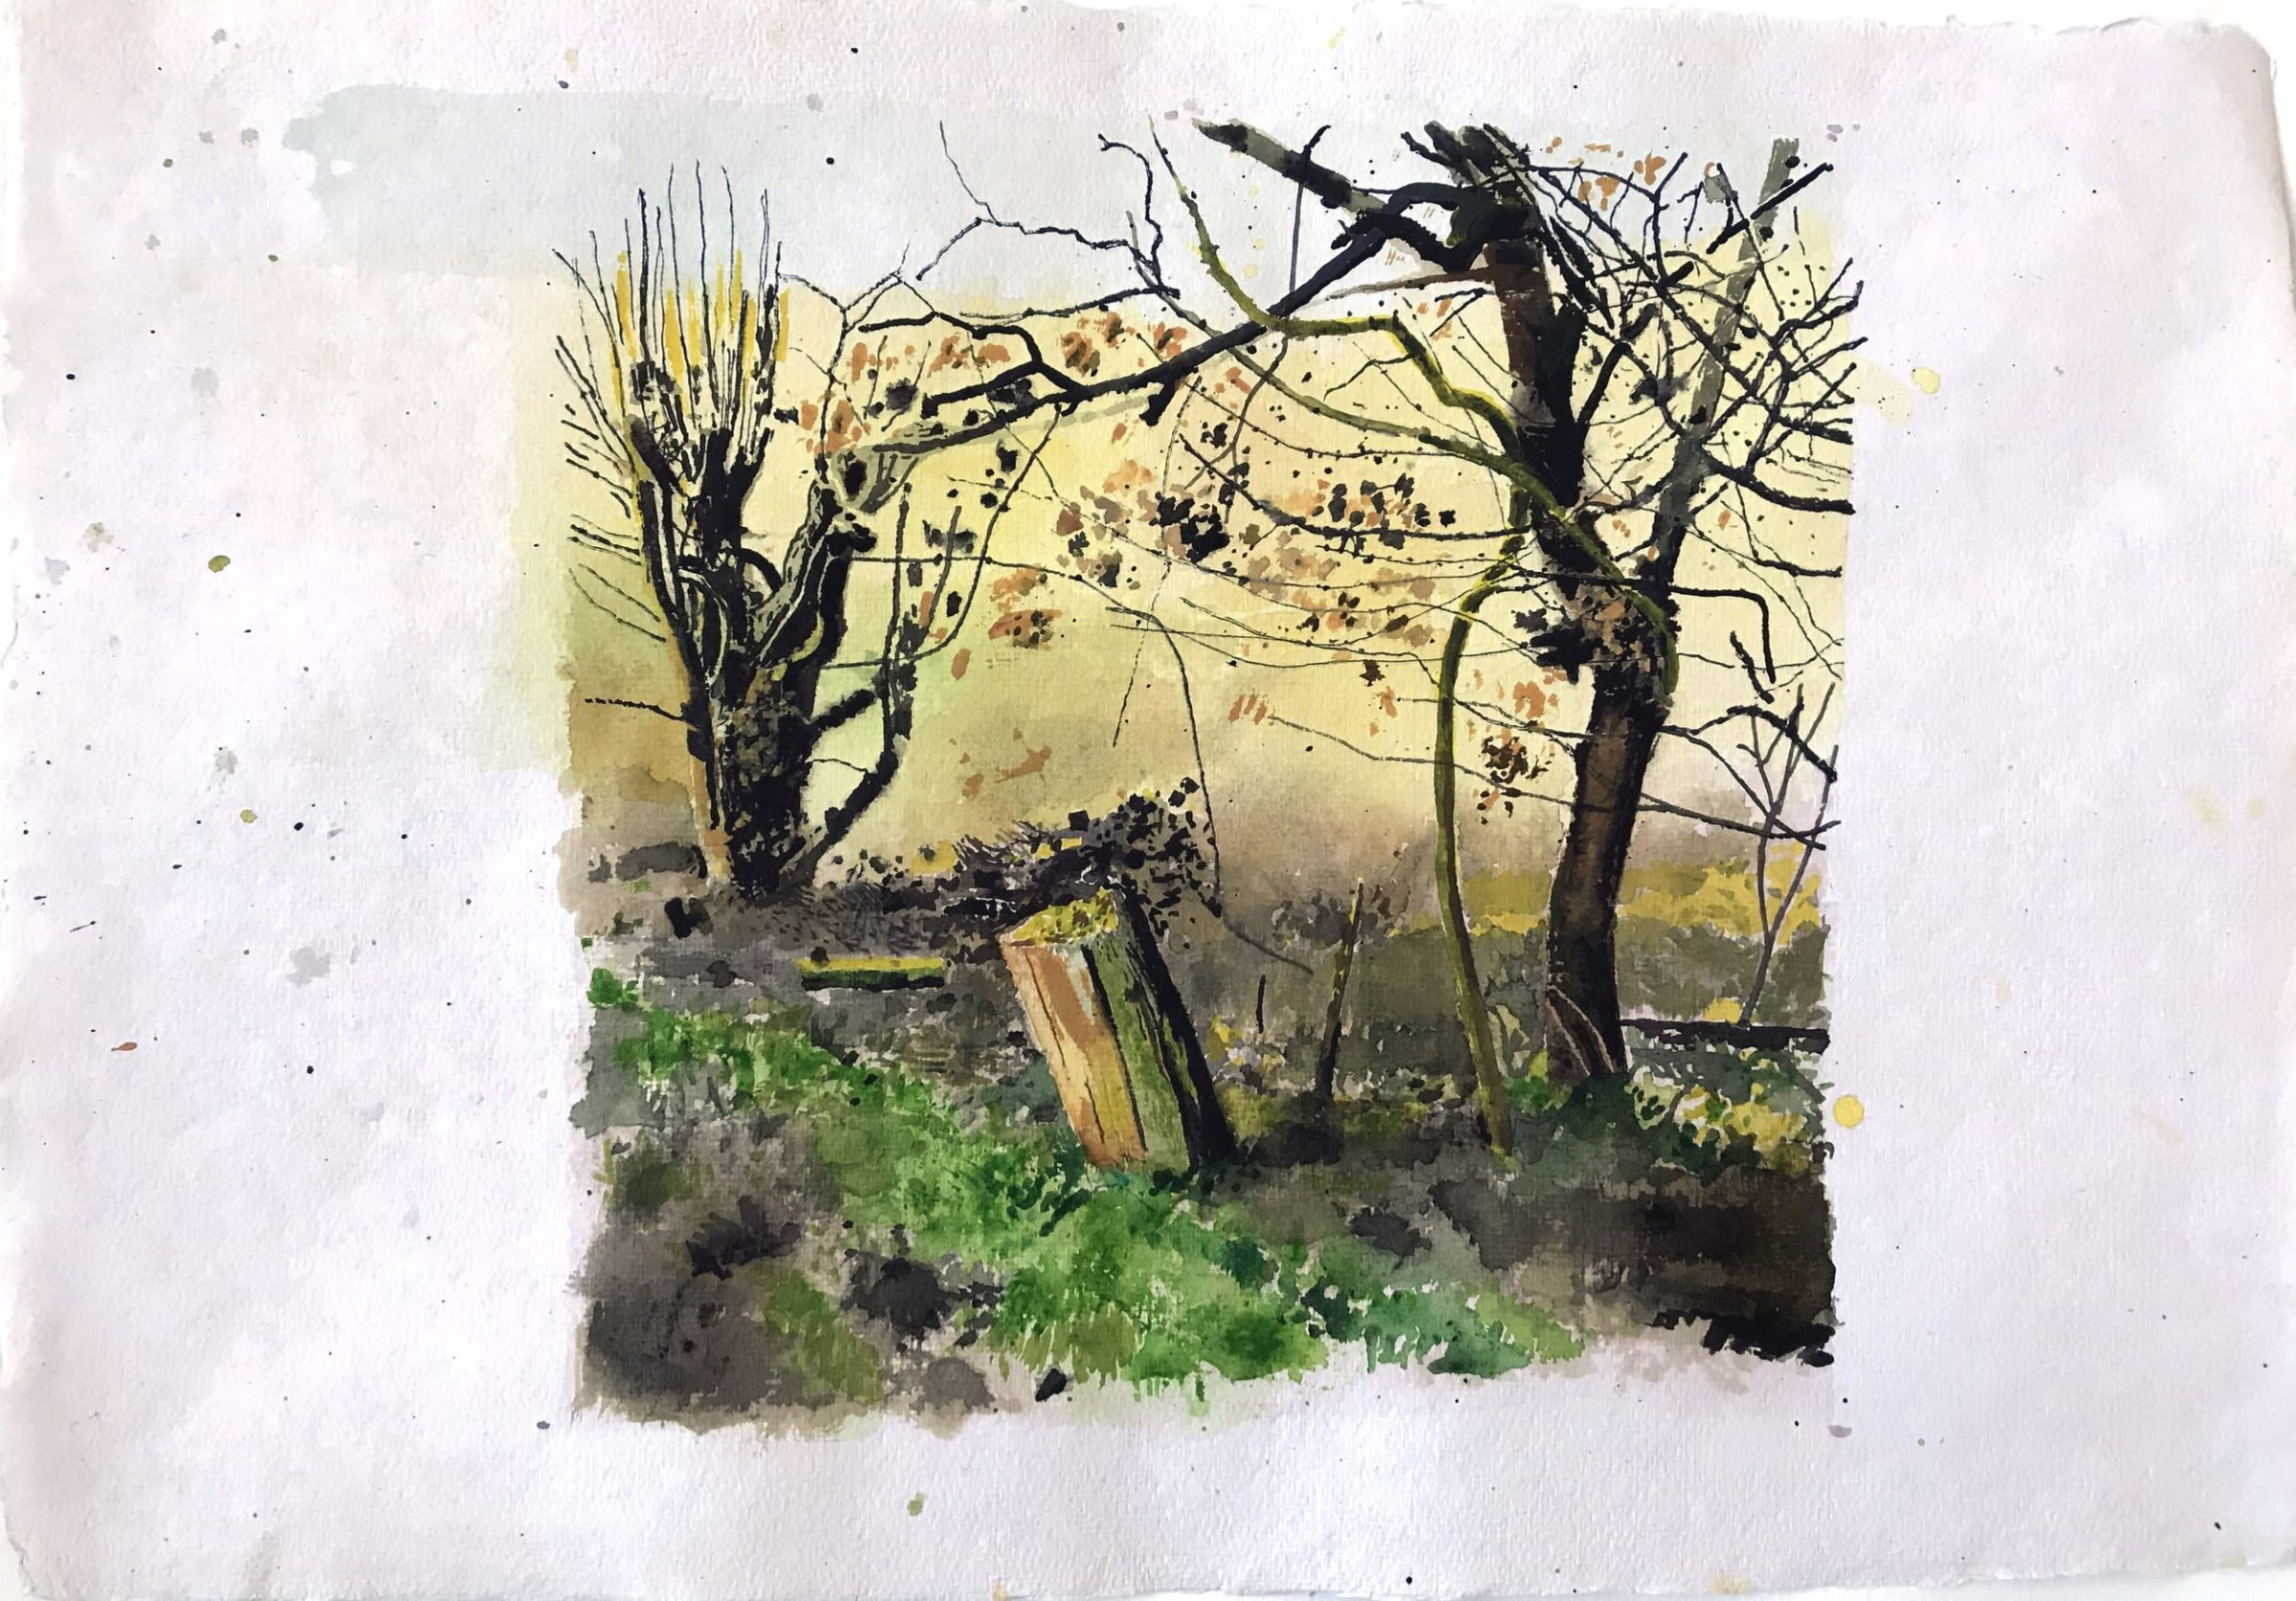 """<span class=""""link fancybox-details-link""""><a href=""""/artists/88-iain-nicholls/works/12282-iain-nicholls-elsecar-cropped-trees-study-4/"""">View Detail Page</a></span><div class=""""artist""""><span class=""""artist""""><strong>Iain Nicholls</strong></span></div><div class=""""title""""><em>Elsecar Cropped Trees Study 4</em></div><div class=""""medium"""">watercolour on paper - mounted on board</div><div class=""""dimensions"""">Artwork: 43 x 60 cm</div><div class=""""price"""">£420.00</div>"""